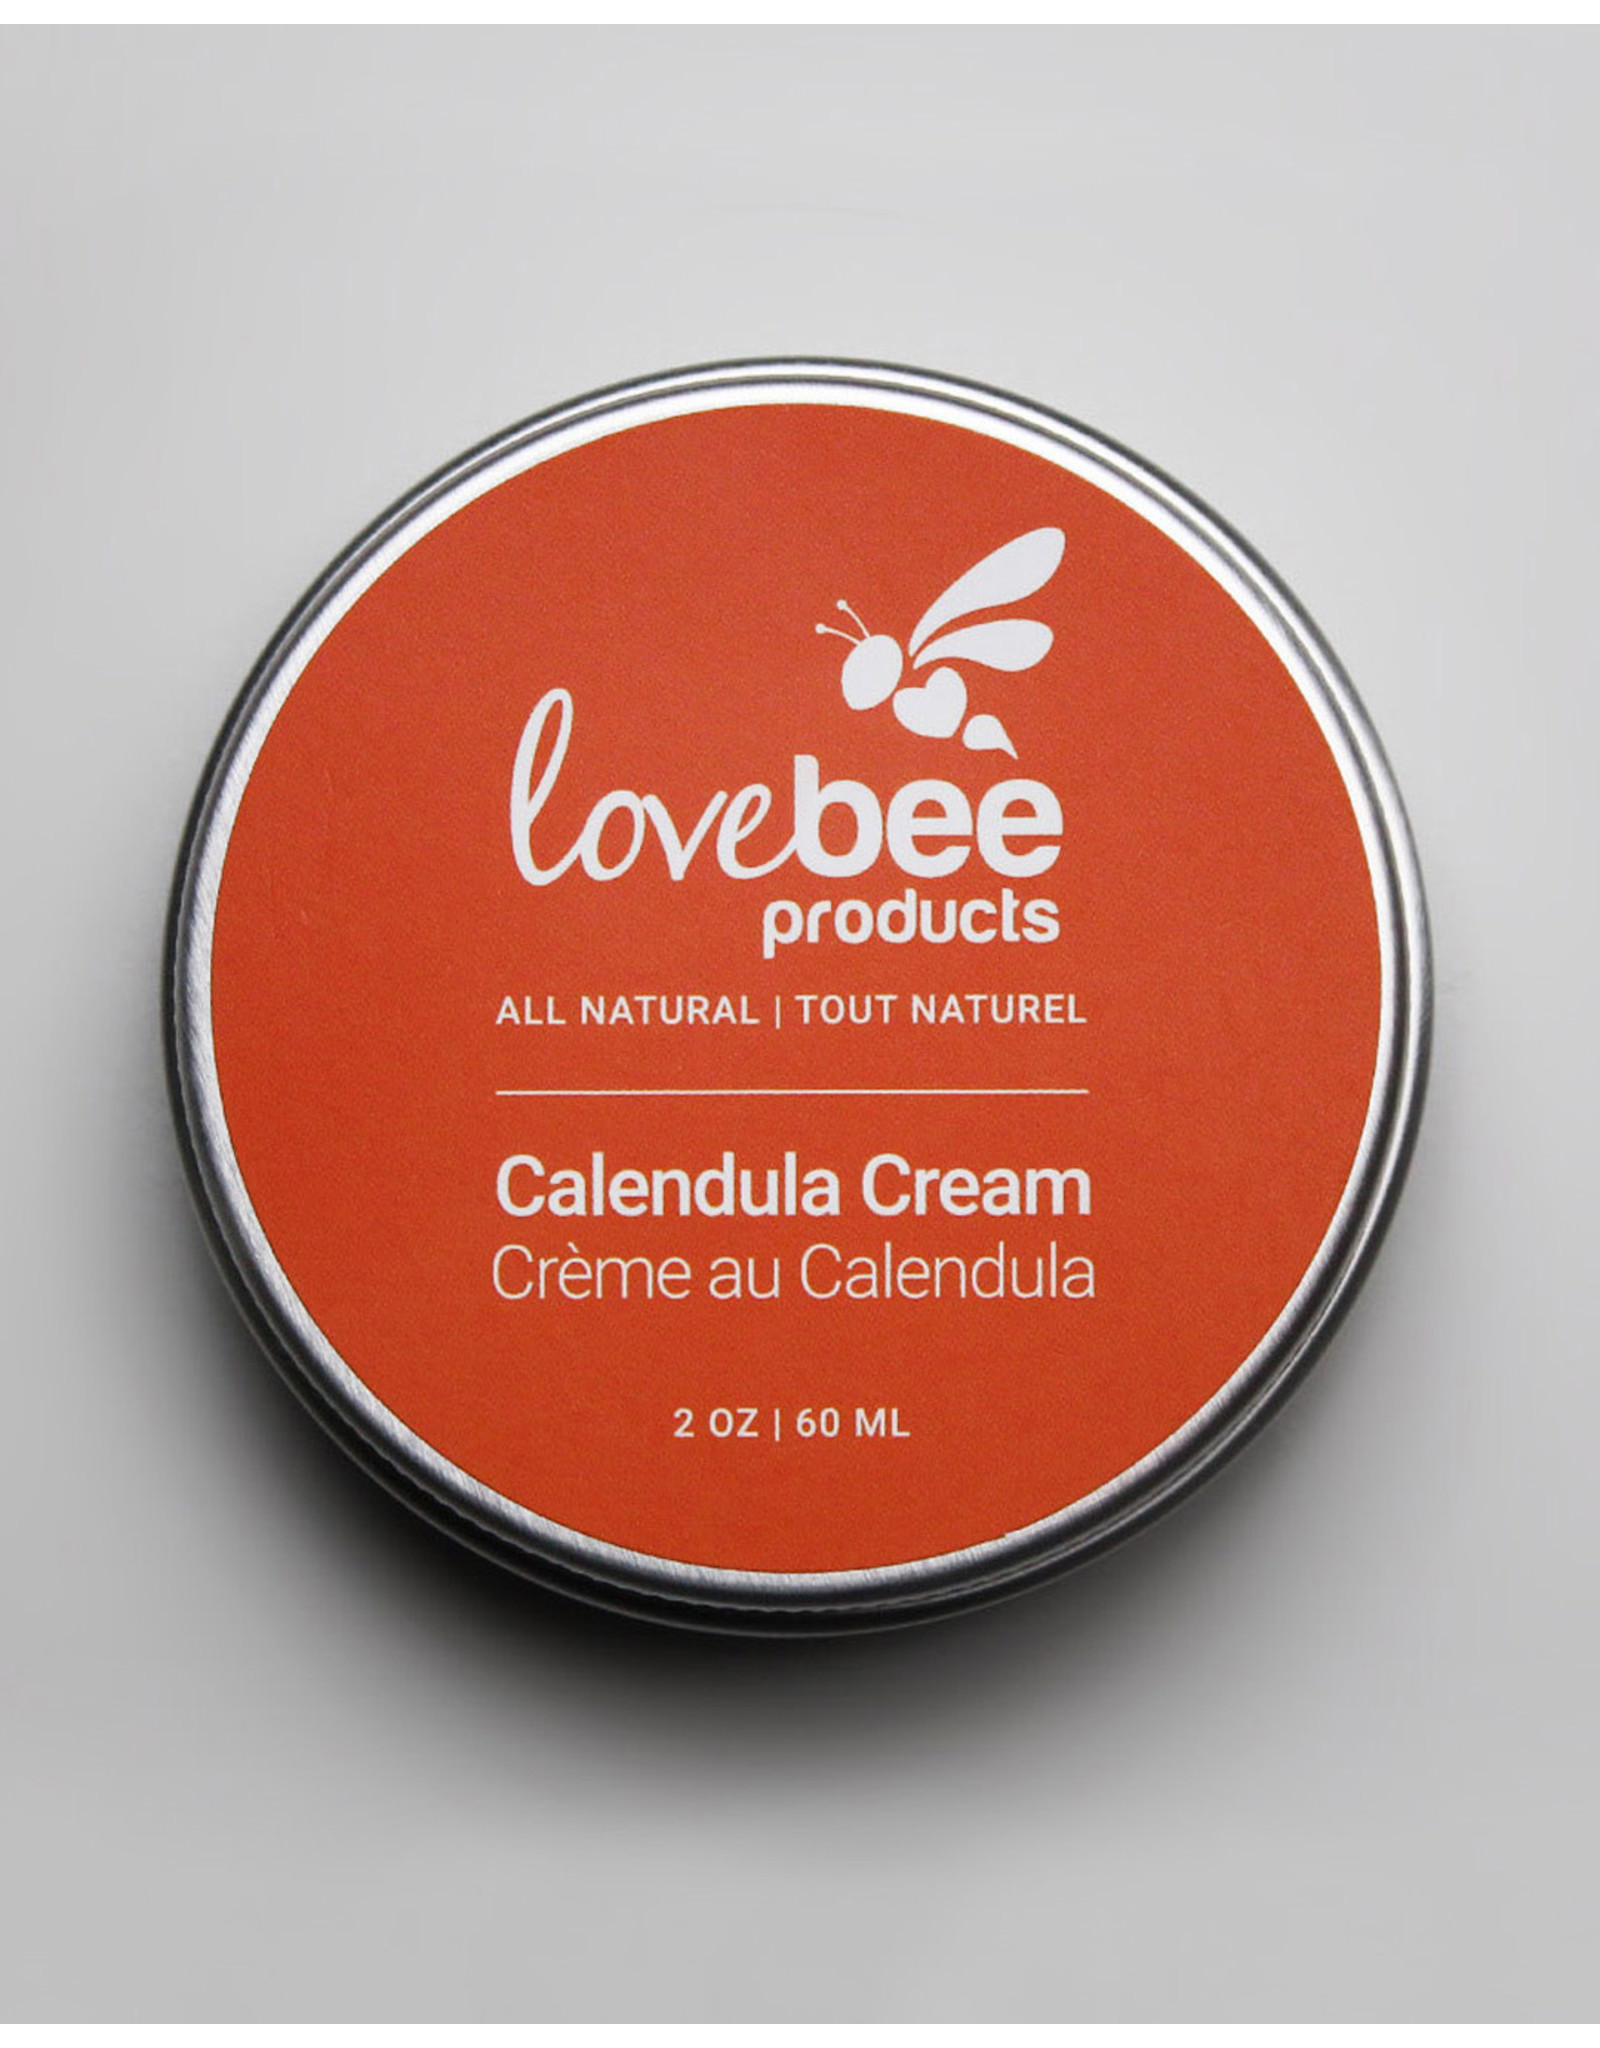 Lovebee Calendula Cream by Lovebee Products